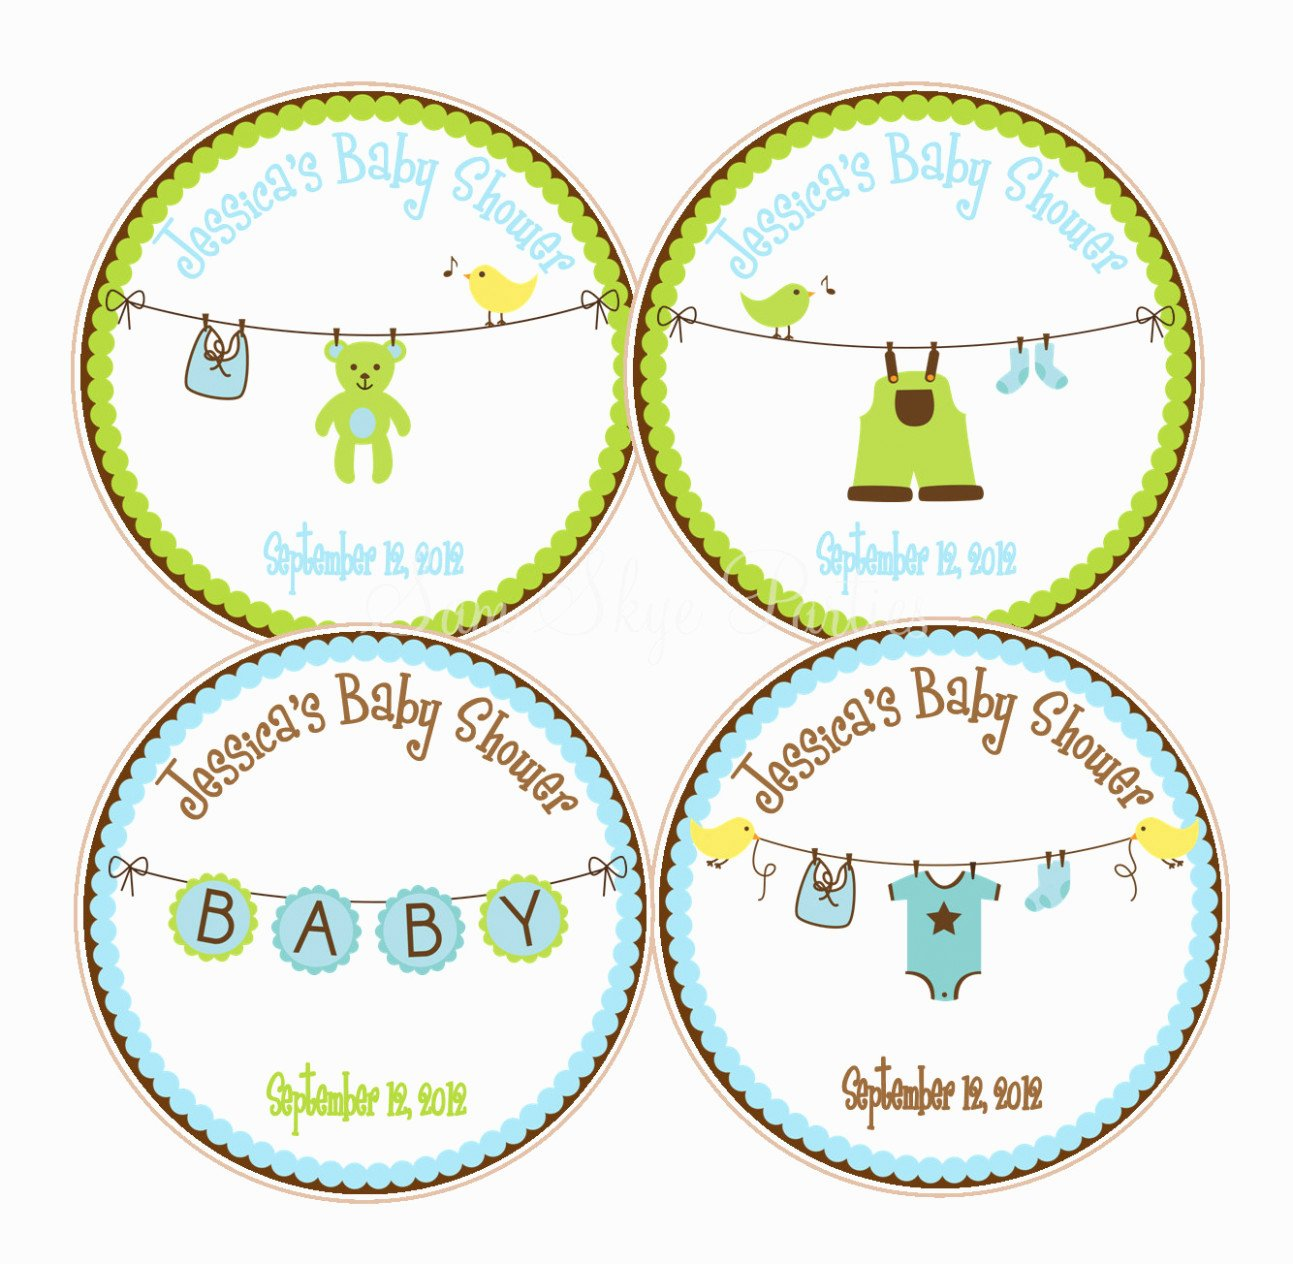 Baby Shower Tags Template Beautiful why is Free Printable Baby